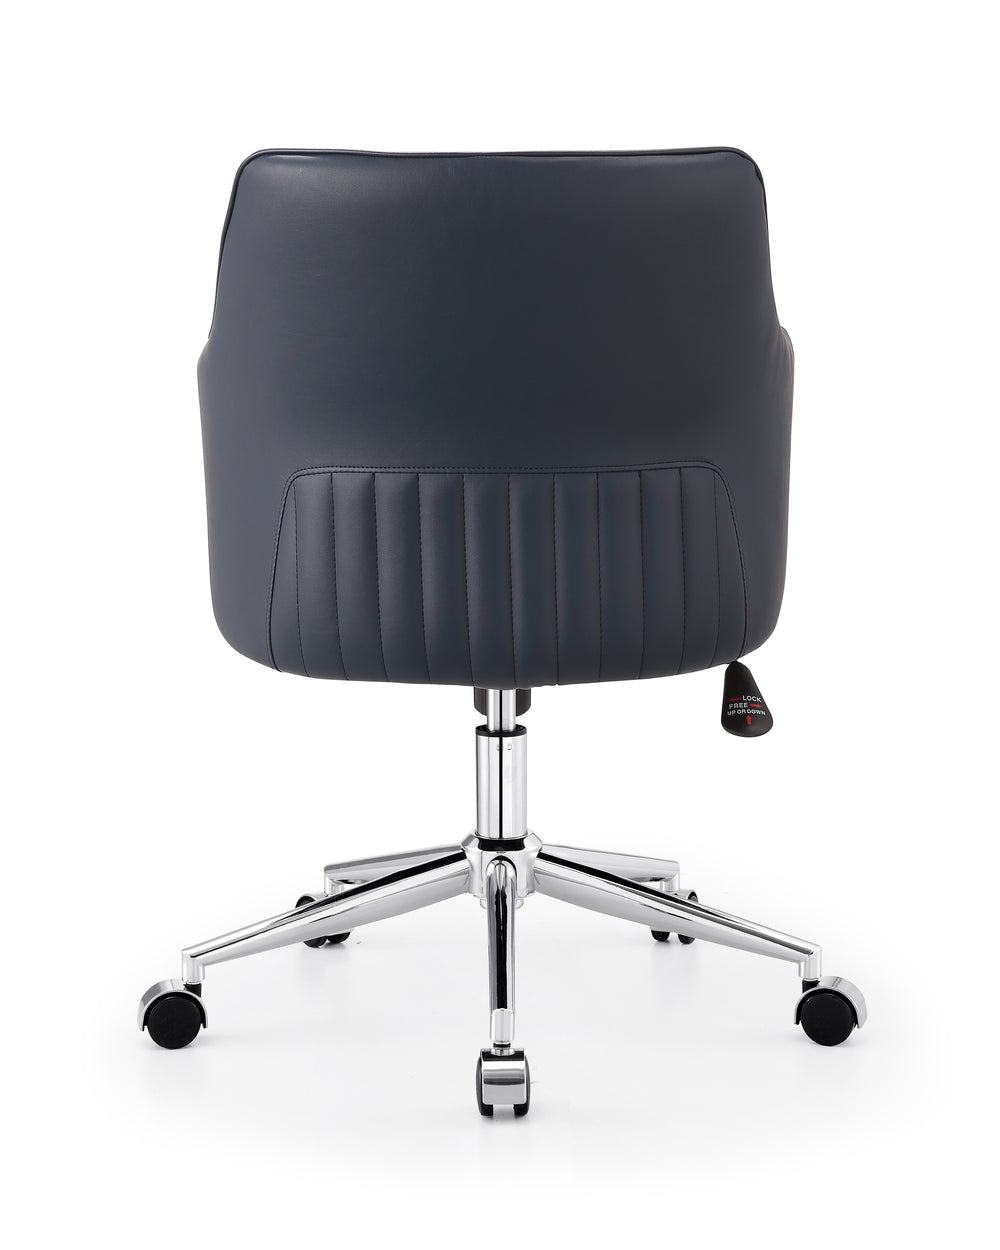 M64 Office Chair in Vegan Leather